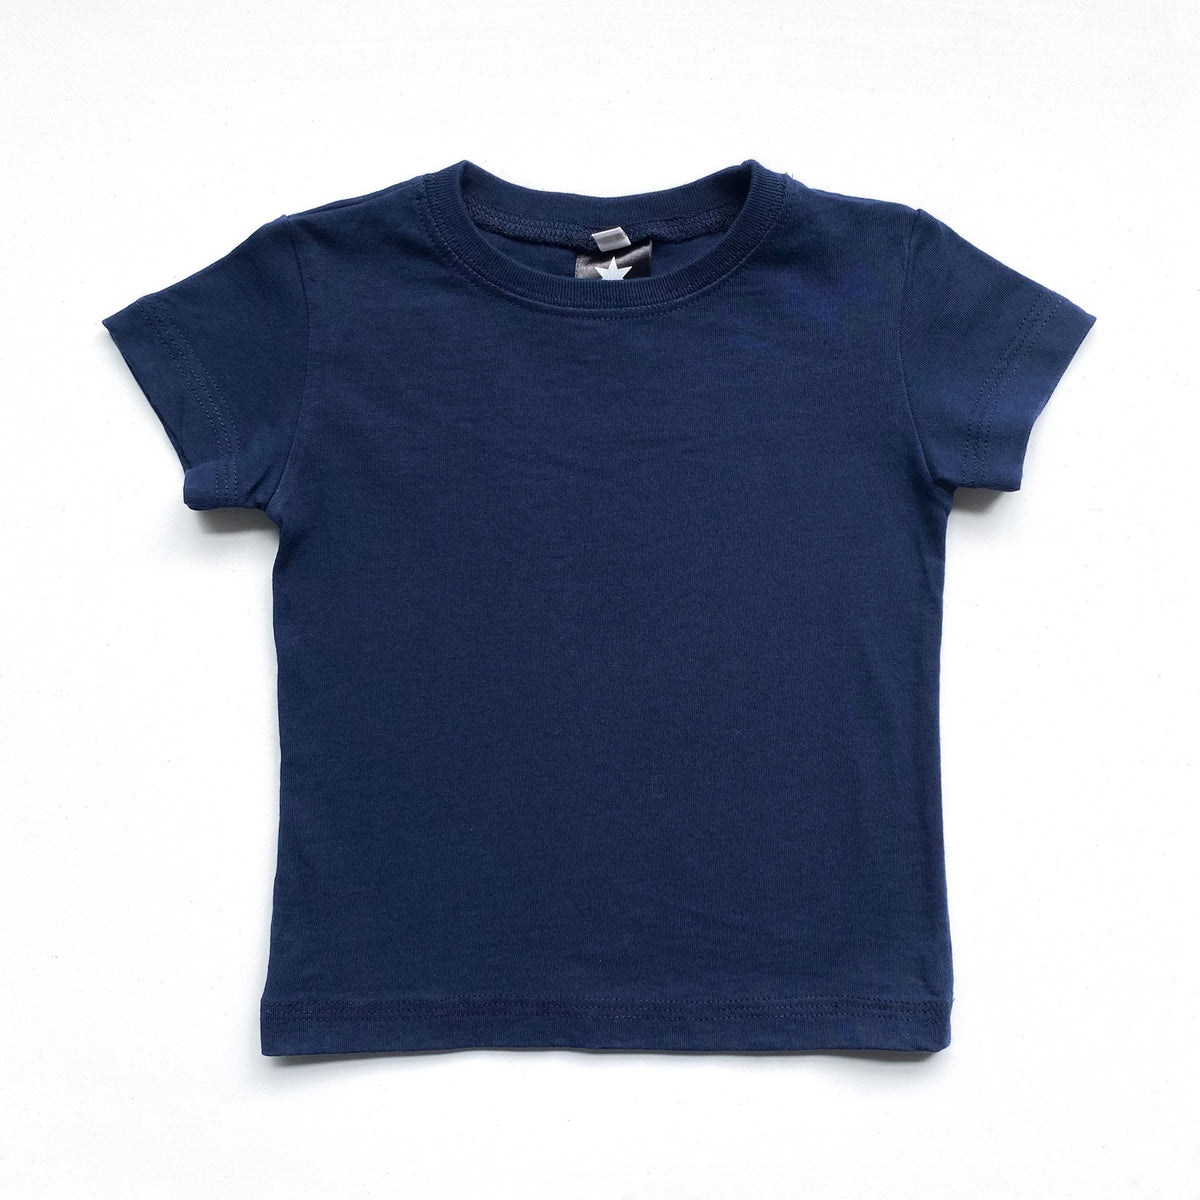 Kids' Classic color:Navy Combed Cotton Kids' T-shirts New T-shirts